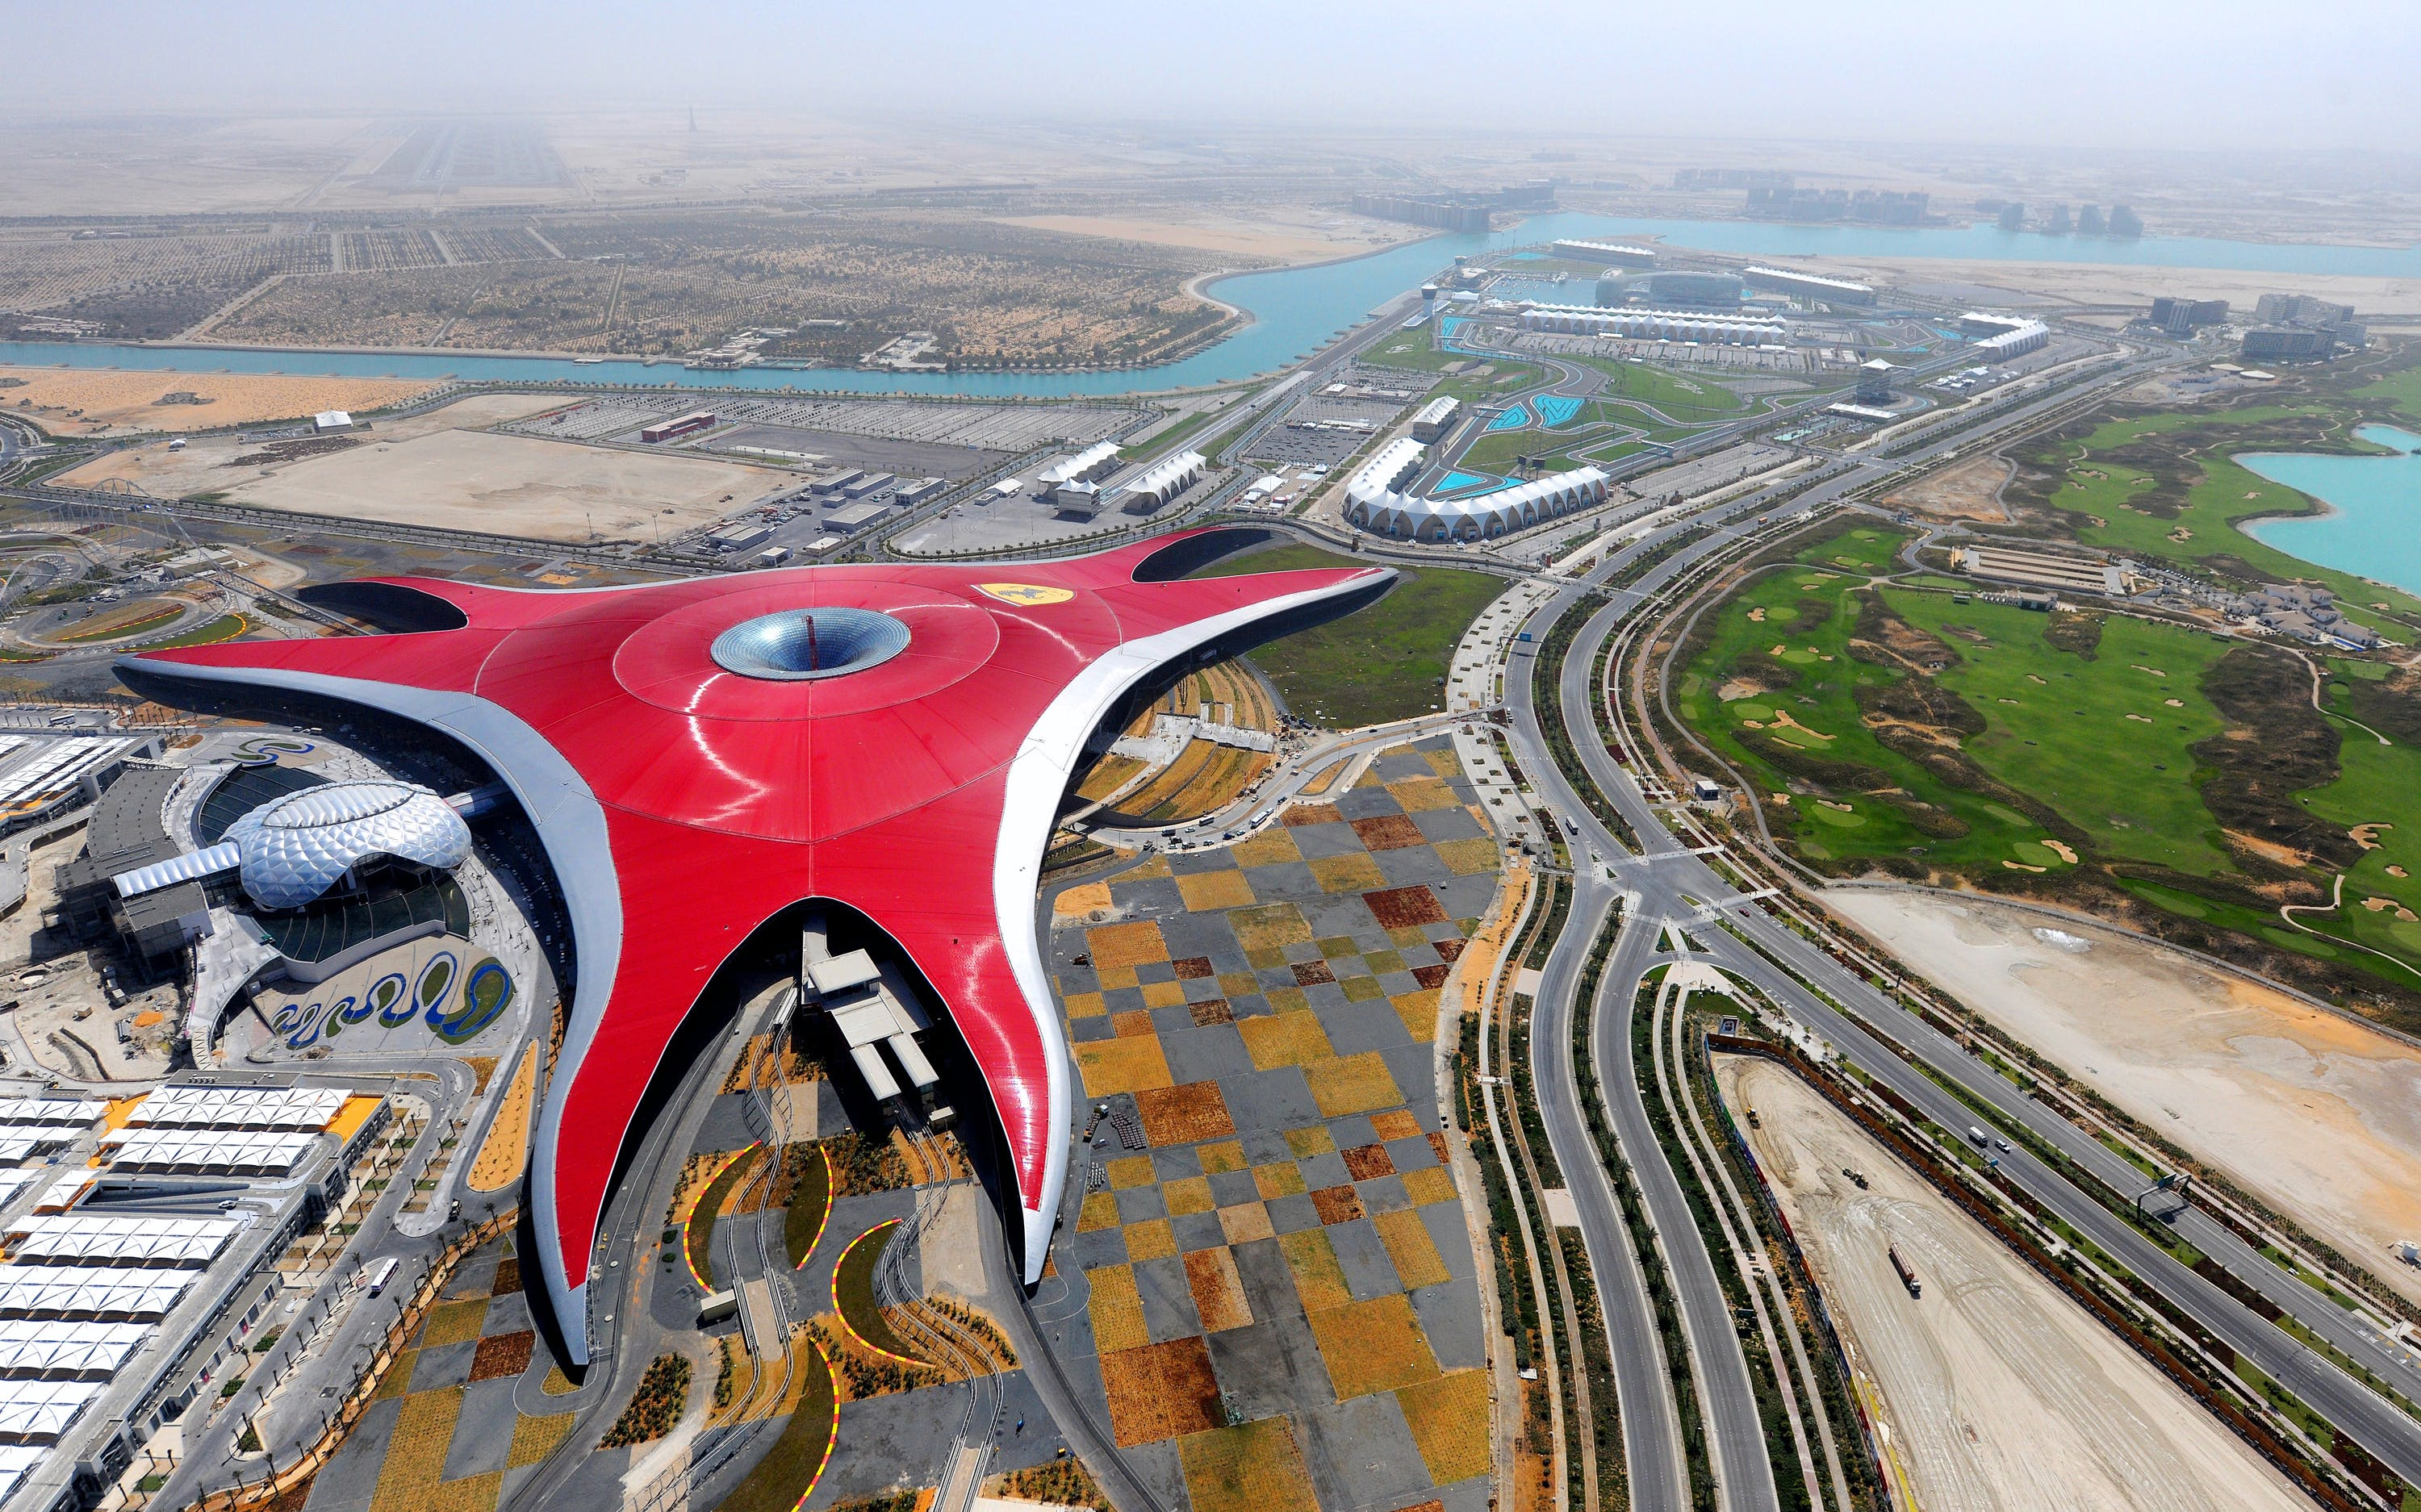 seawings seaplane tour from dubai to abu dhabi with ferrari world-2